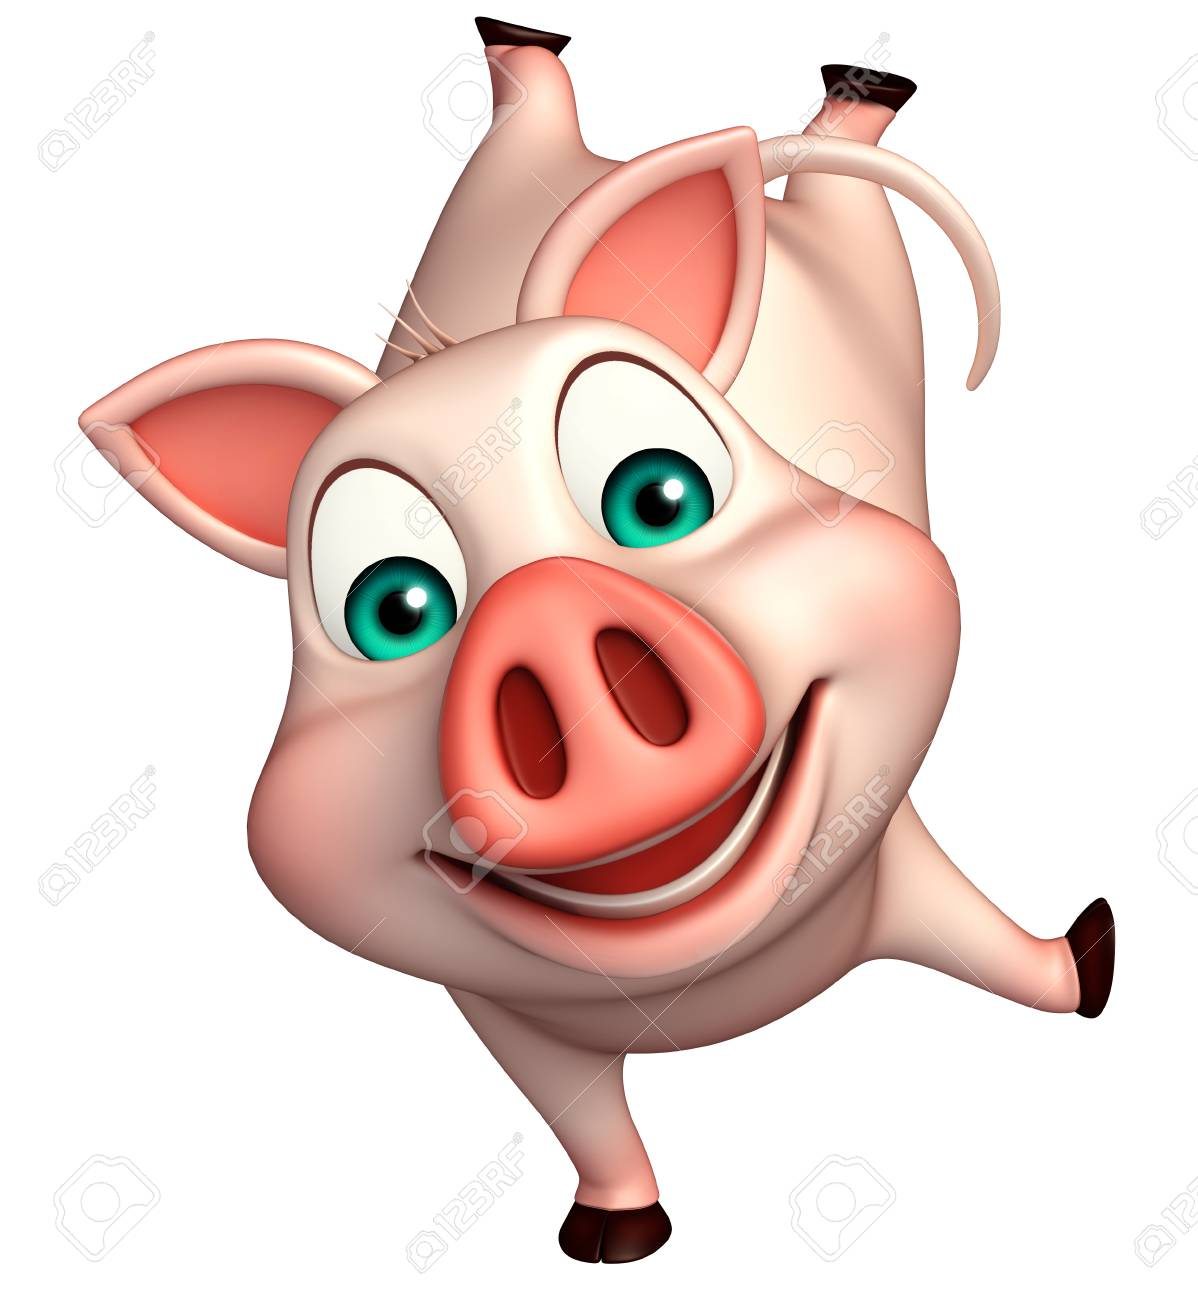 3d Rendered Illustration Of Funny Pig Cartoon Character Stock Photo Picture And Royalty Free Image Image 53247298